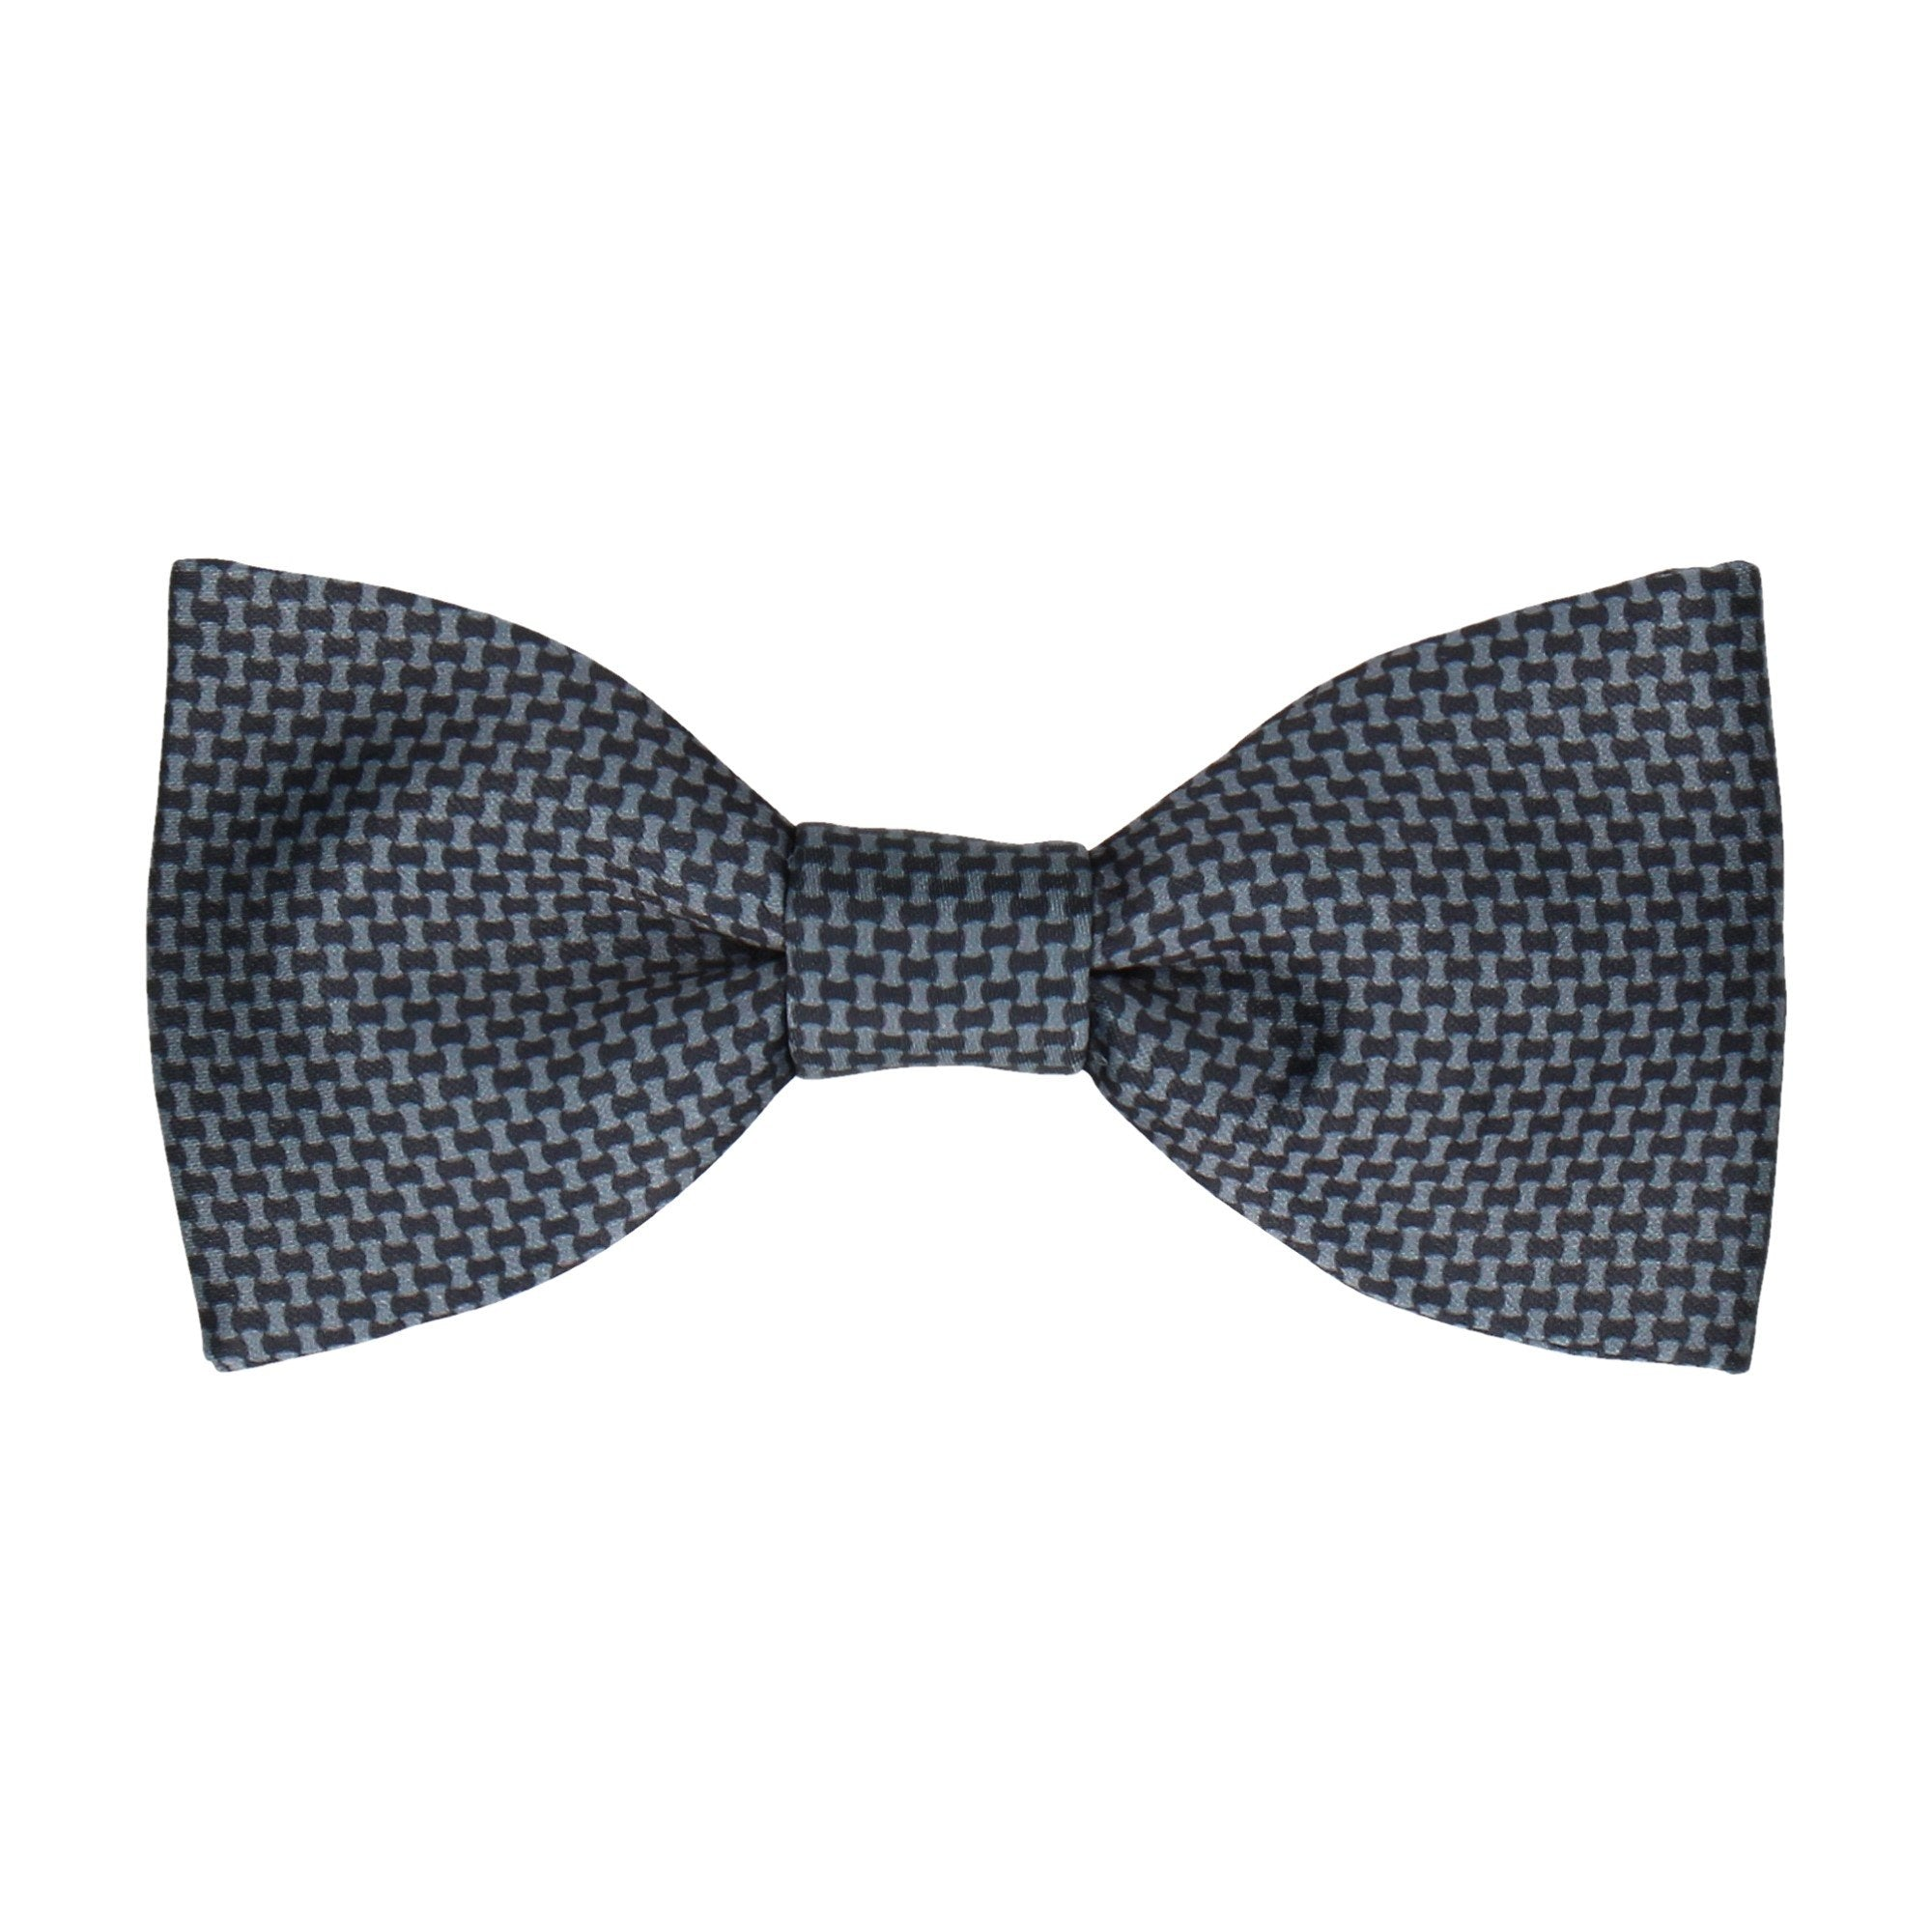 Melville in Black Bow Tie